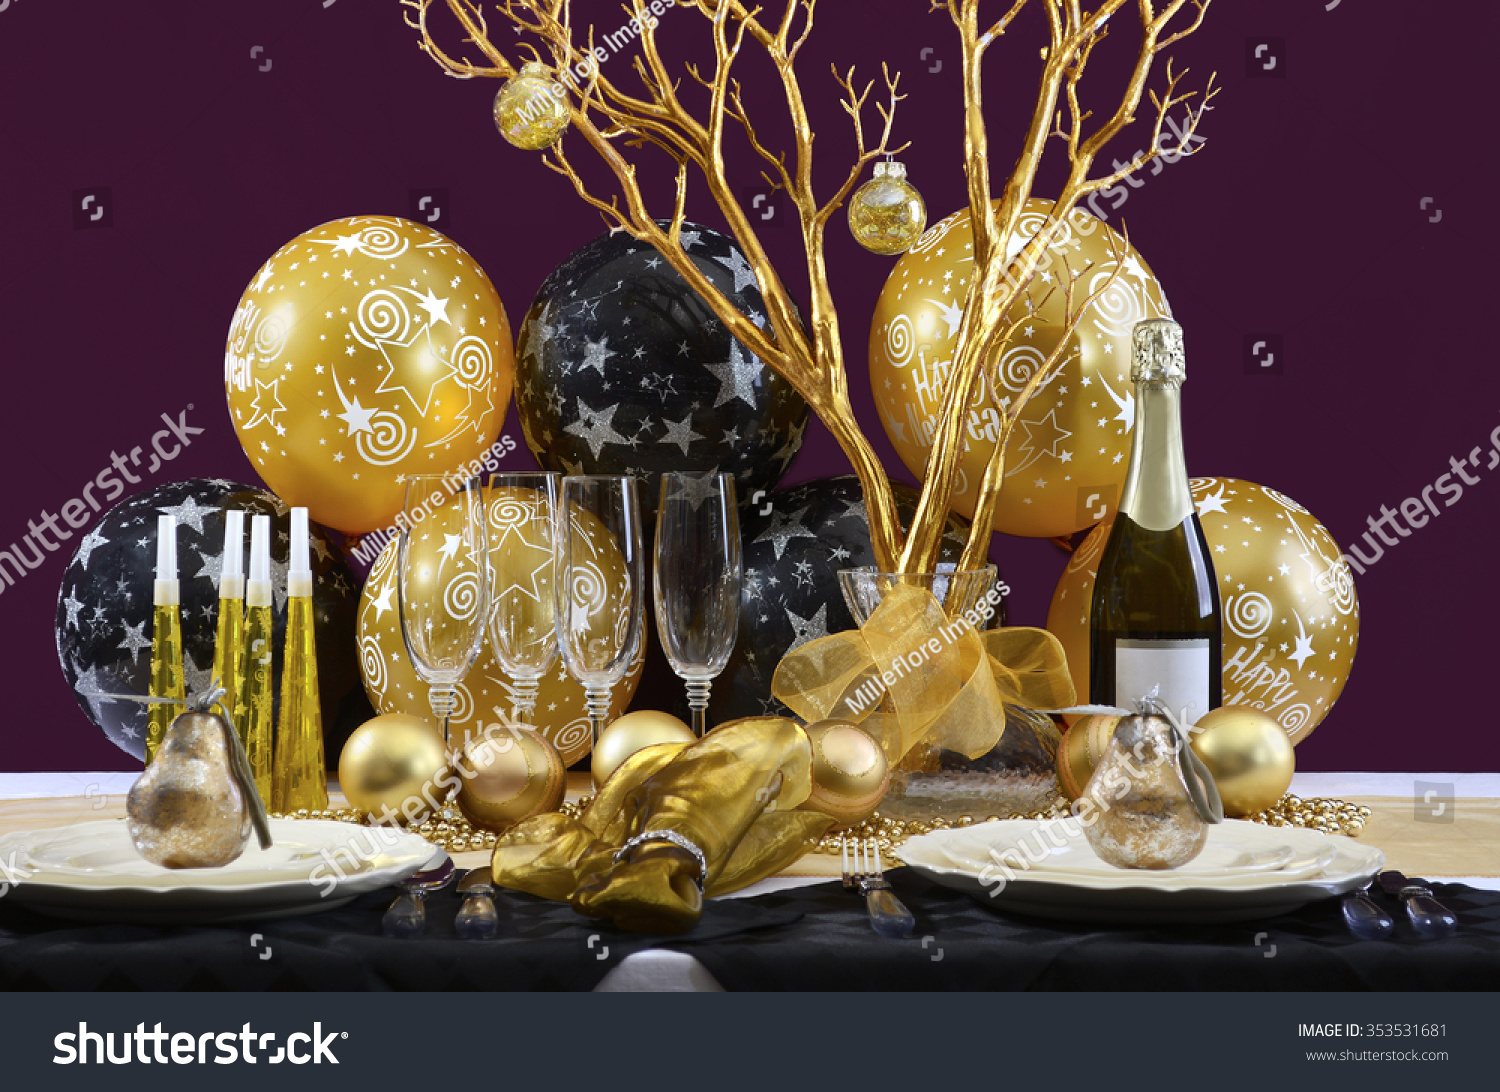 Elegant dinner table setting - Happy New Years Eve Elegant Dinner Table Setting With Black And Gold Decorations Balloons And